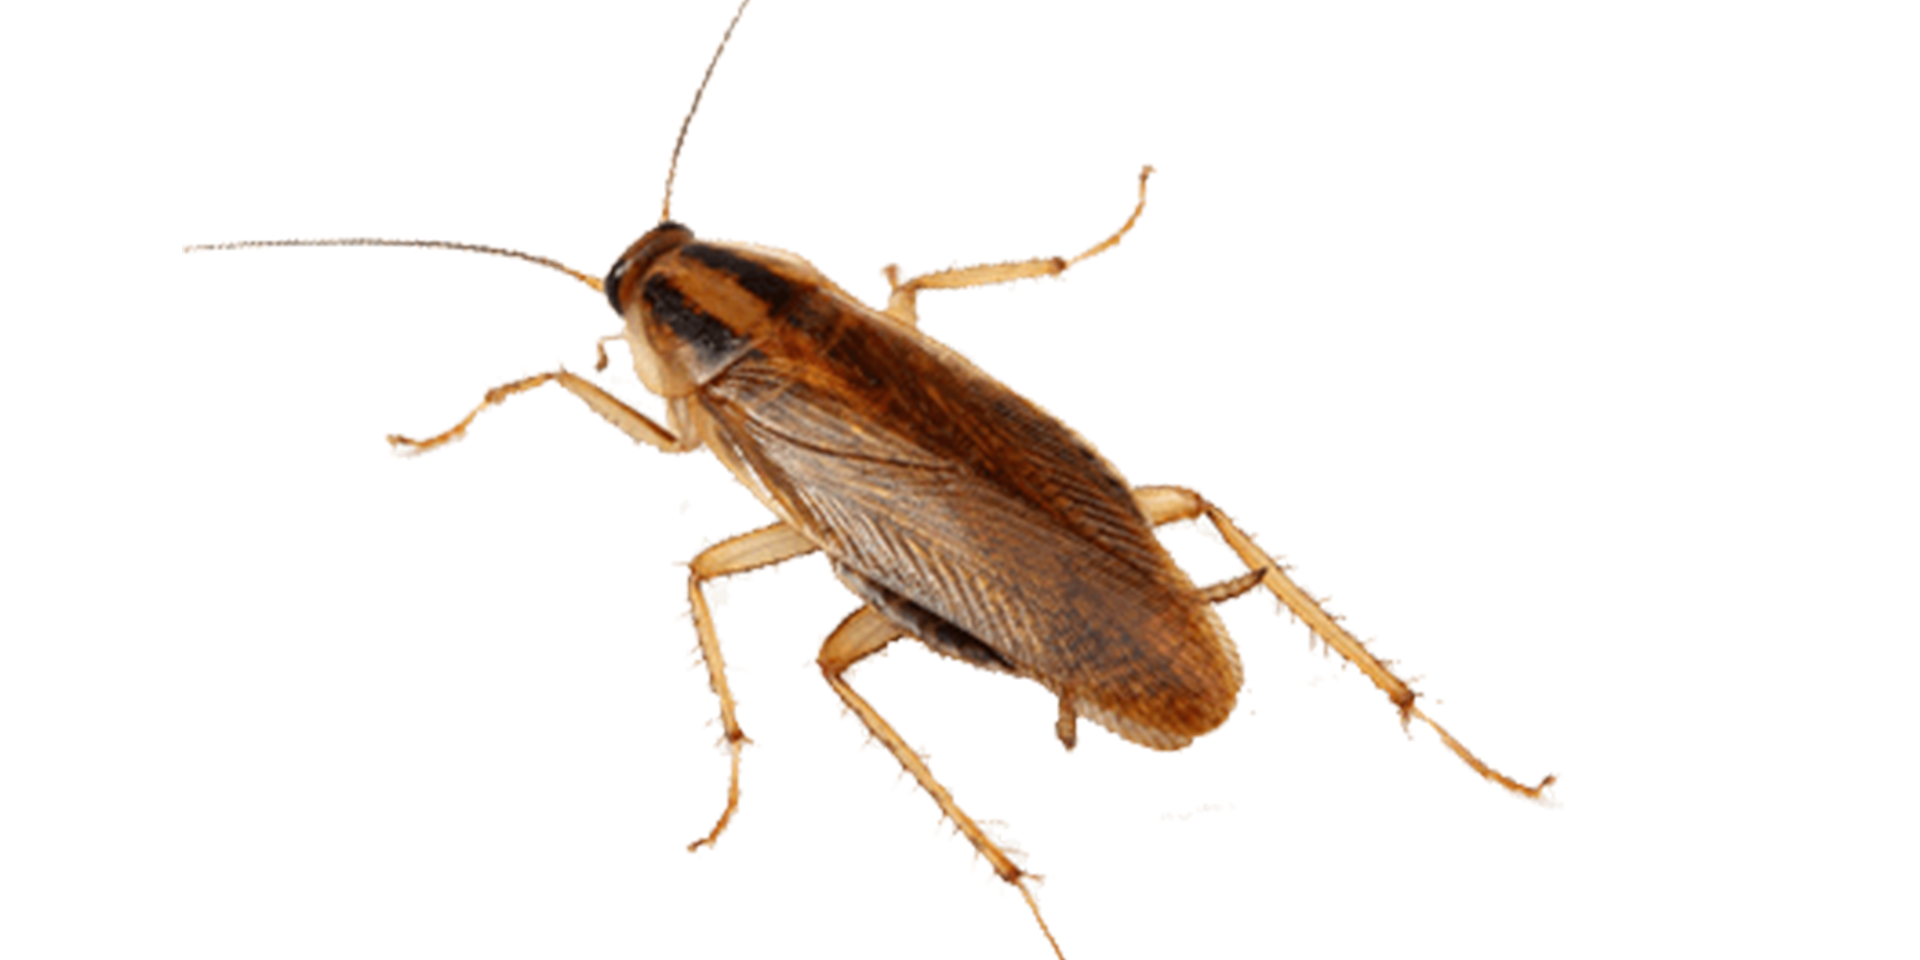 Insect,Invertebrate,Cockroach,Pest,Beetle,Arthropod,Oriental.